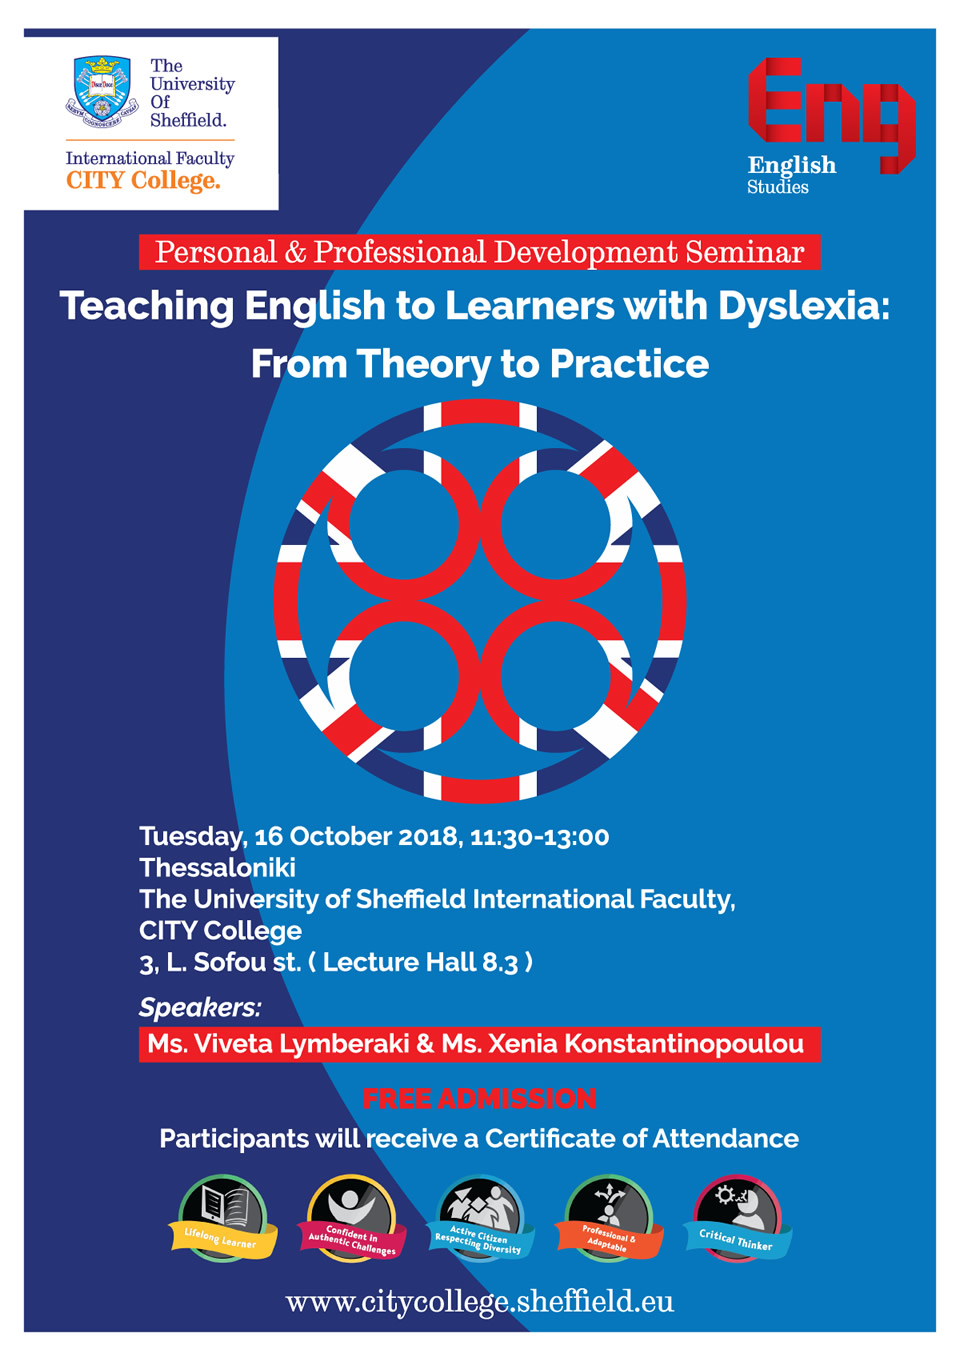 Seminar: Teaching English to Learners with Dyslexia